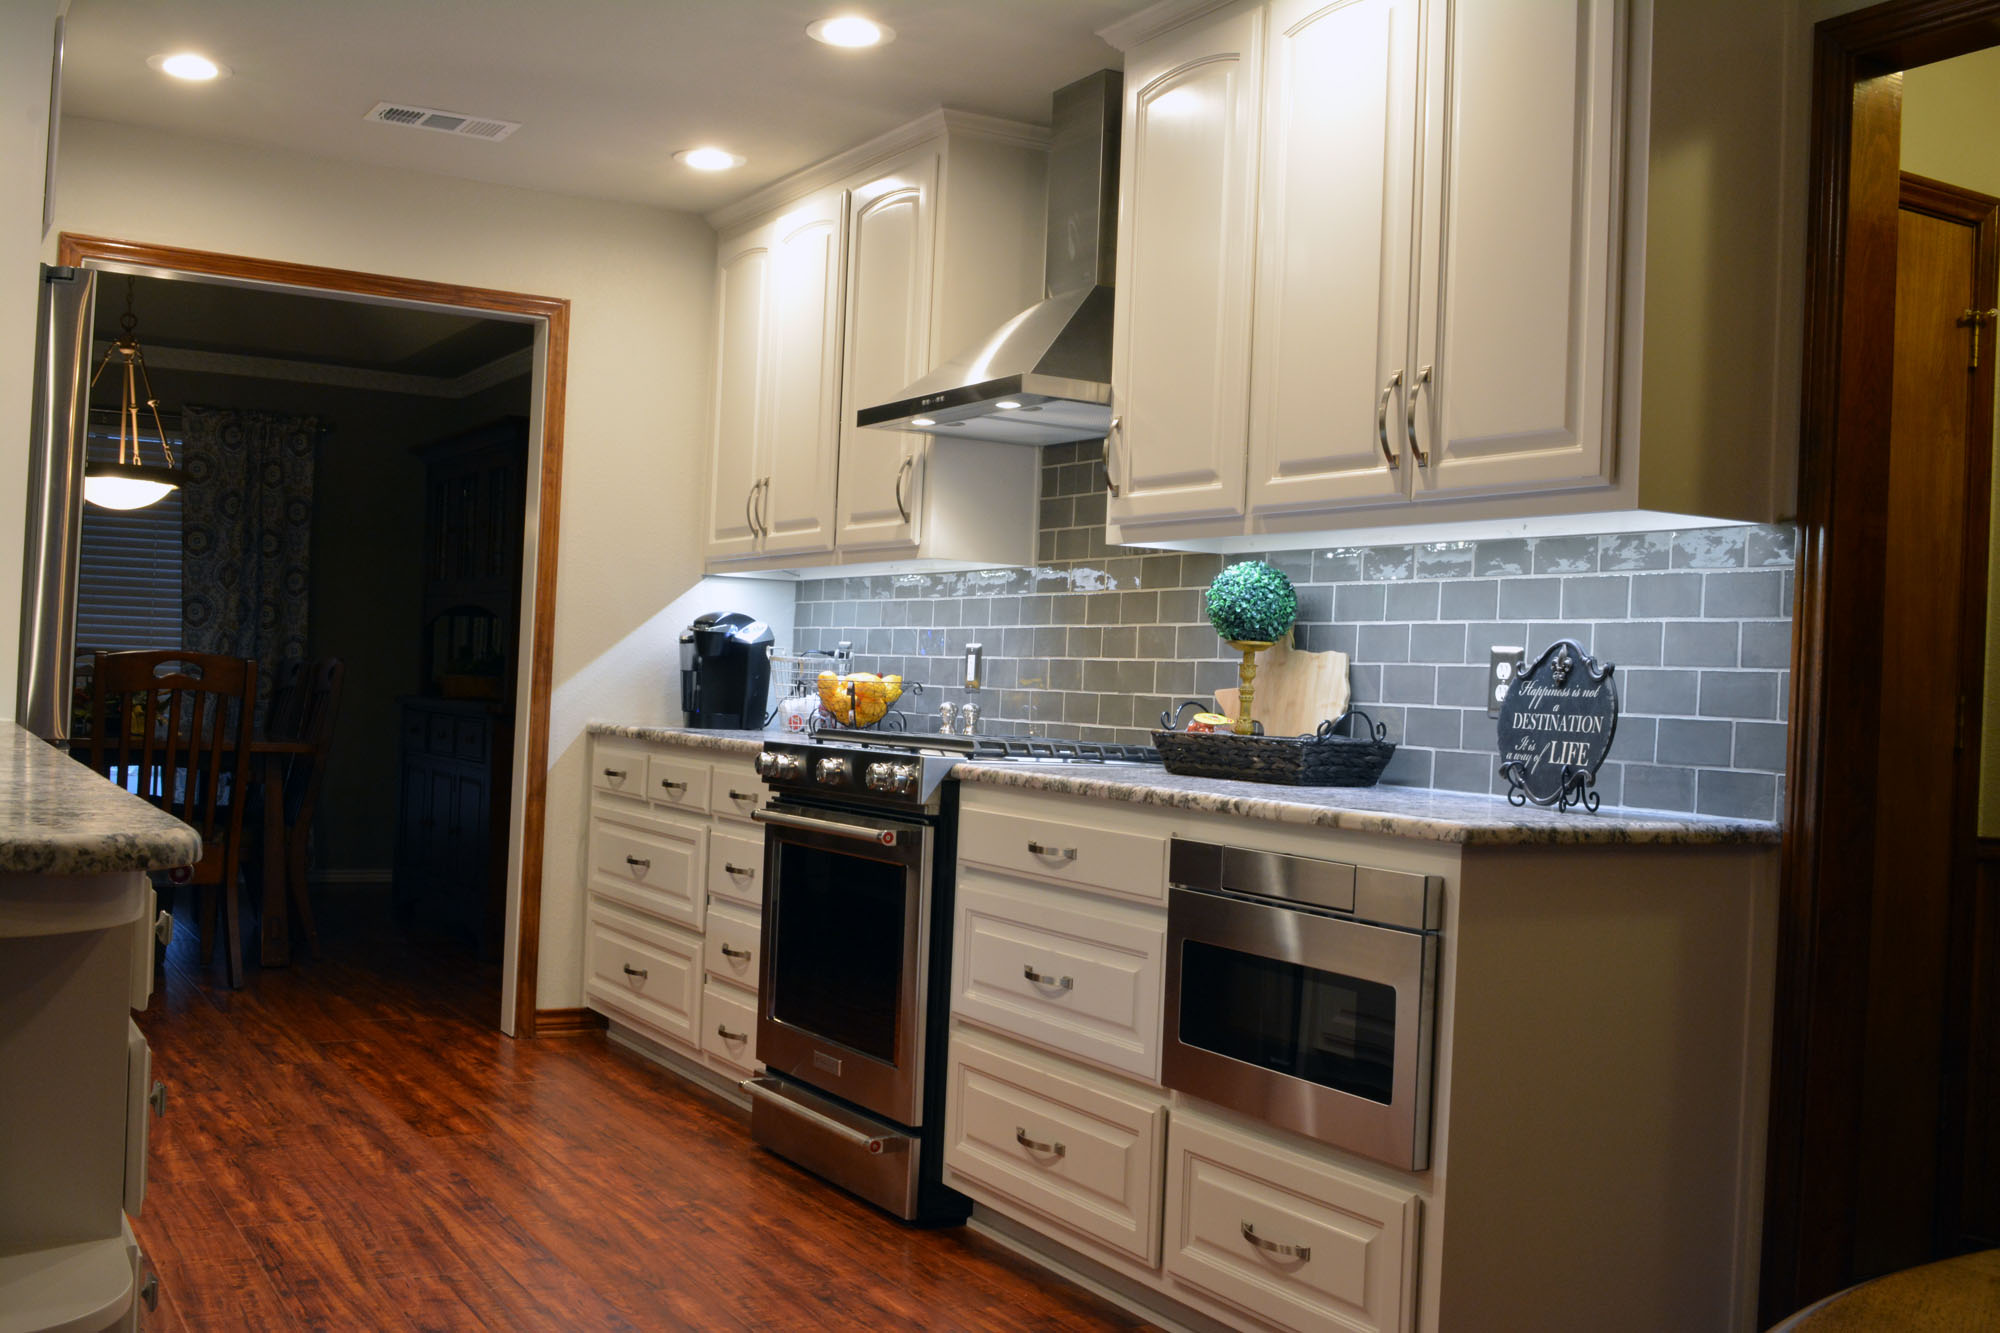 1970 S Kitchen Gets New Life Medford Design Build